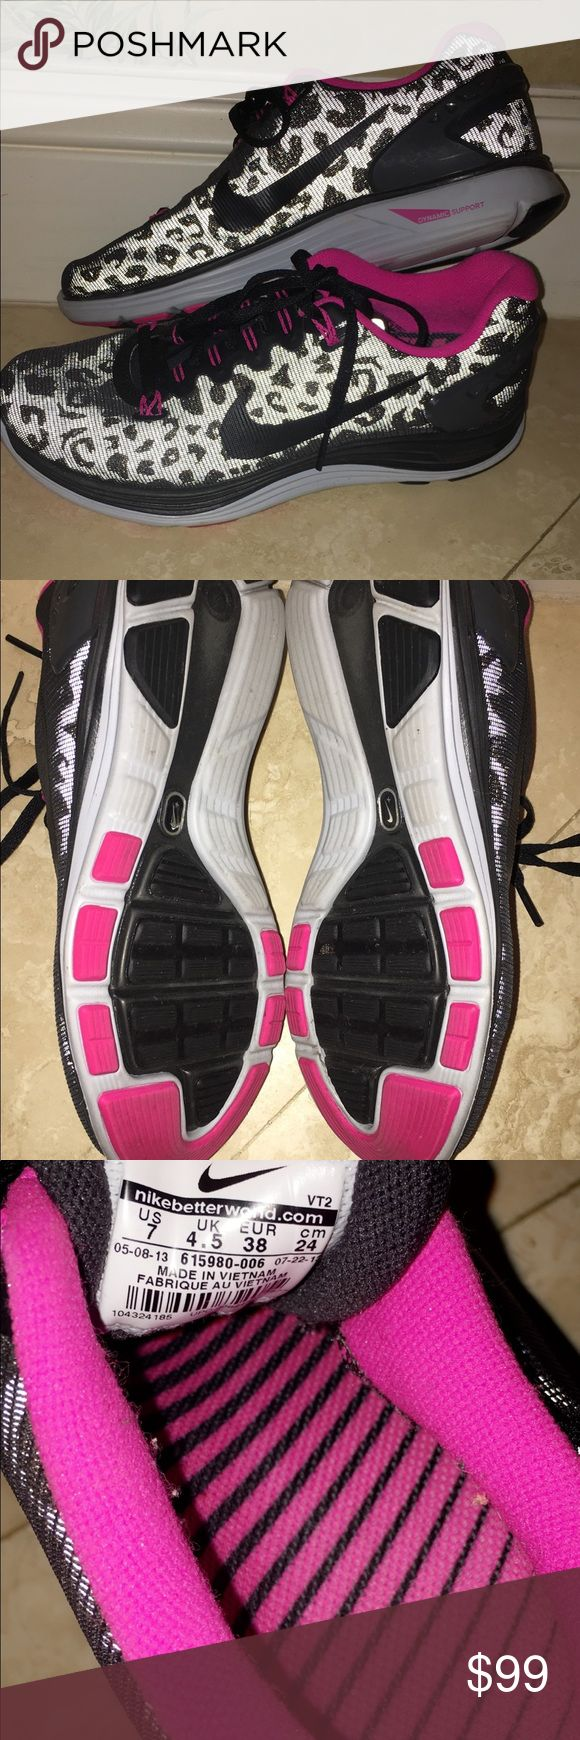 Rare Leopard Print Nikes Rare Reflective Leopard Print Pink Nikes! ONLY worn once for a photo shoot. Style is discontinued. Like new Nike Shoes Sneakers